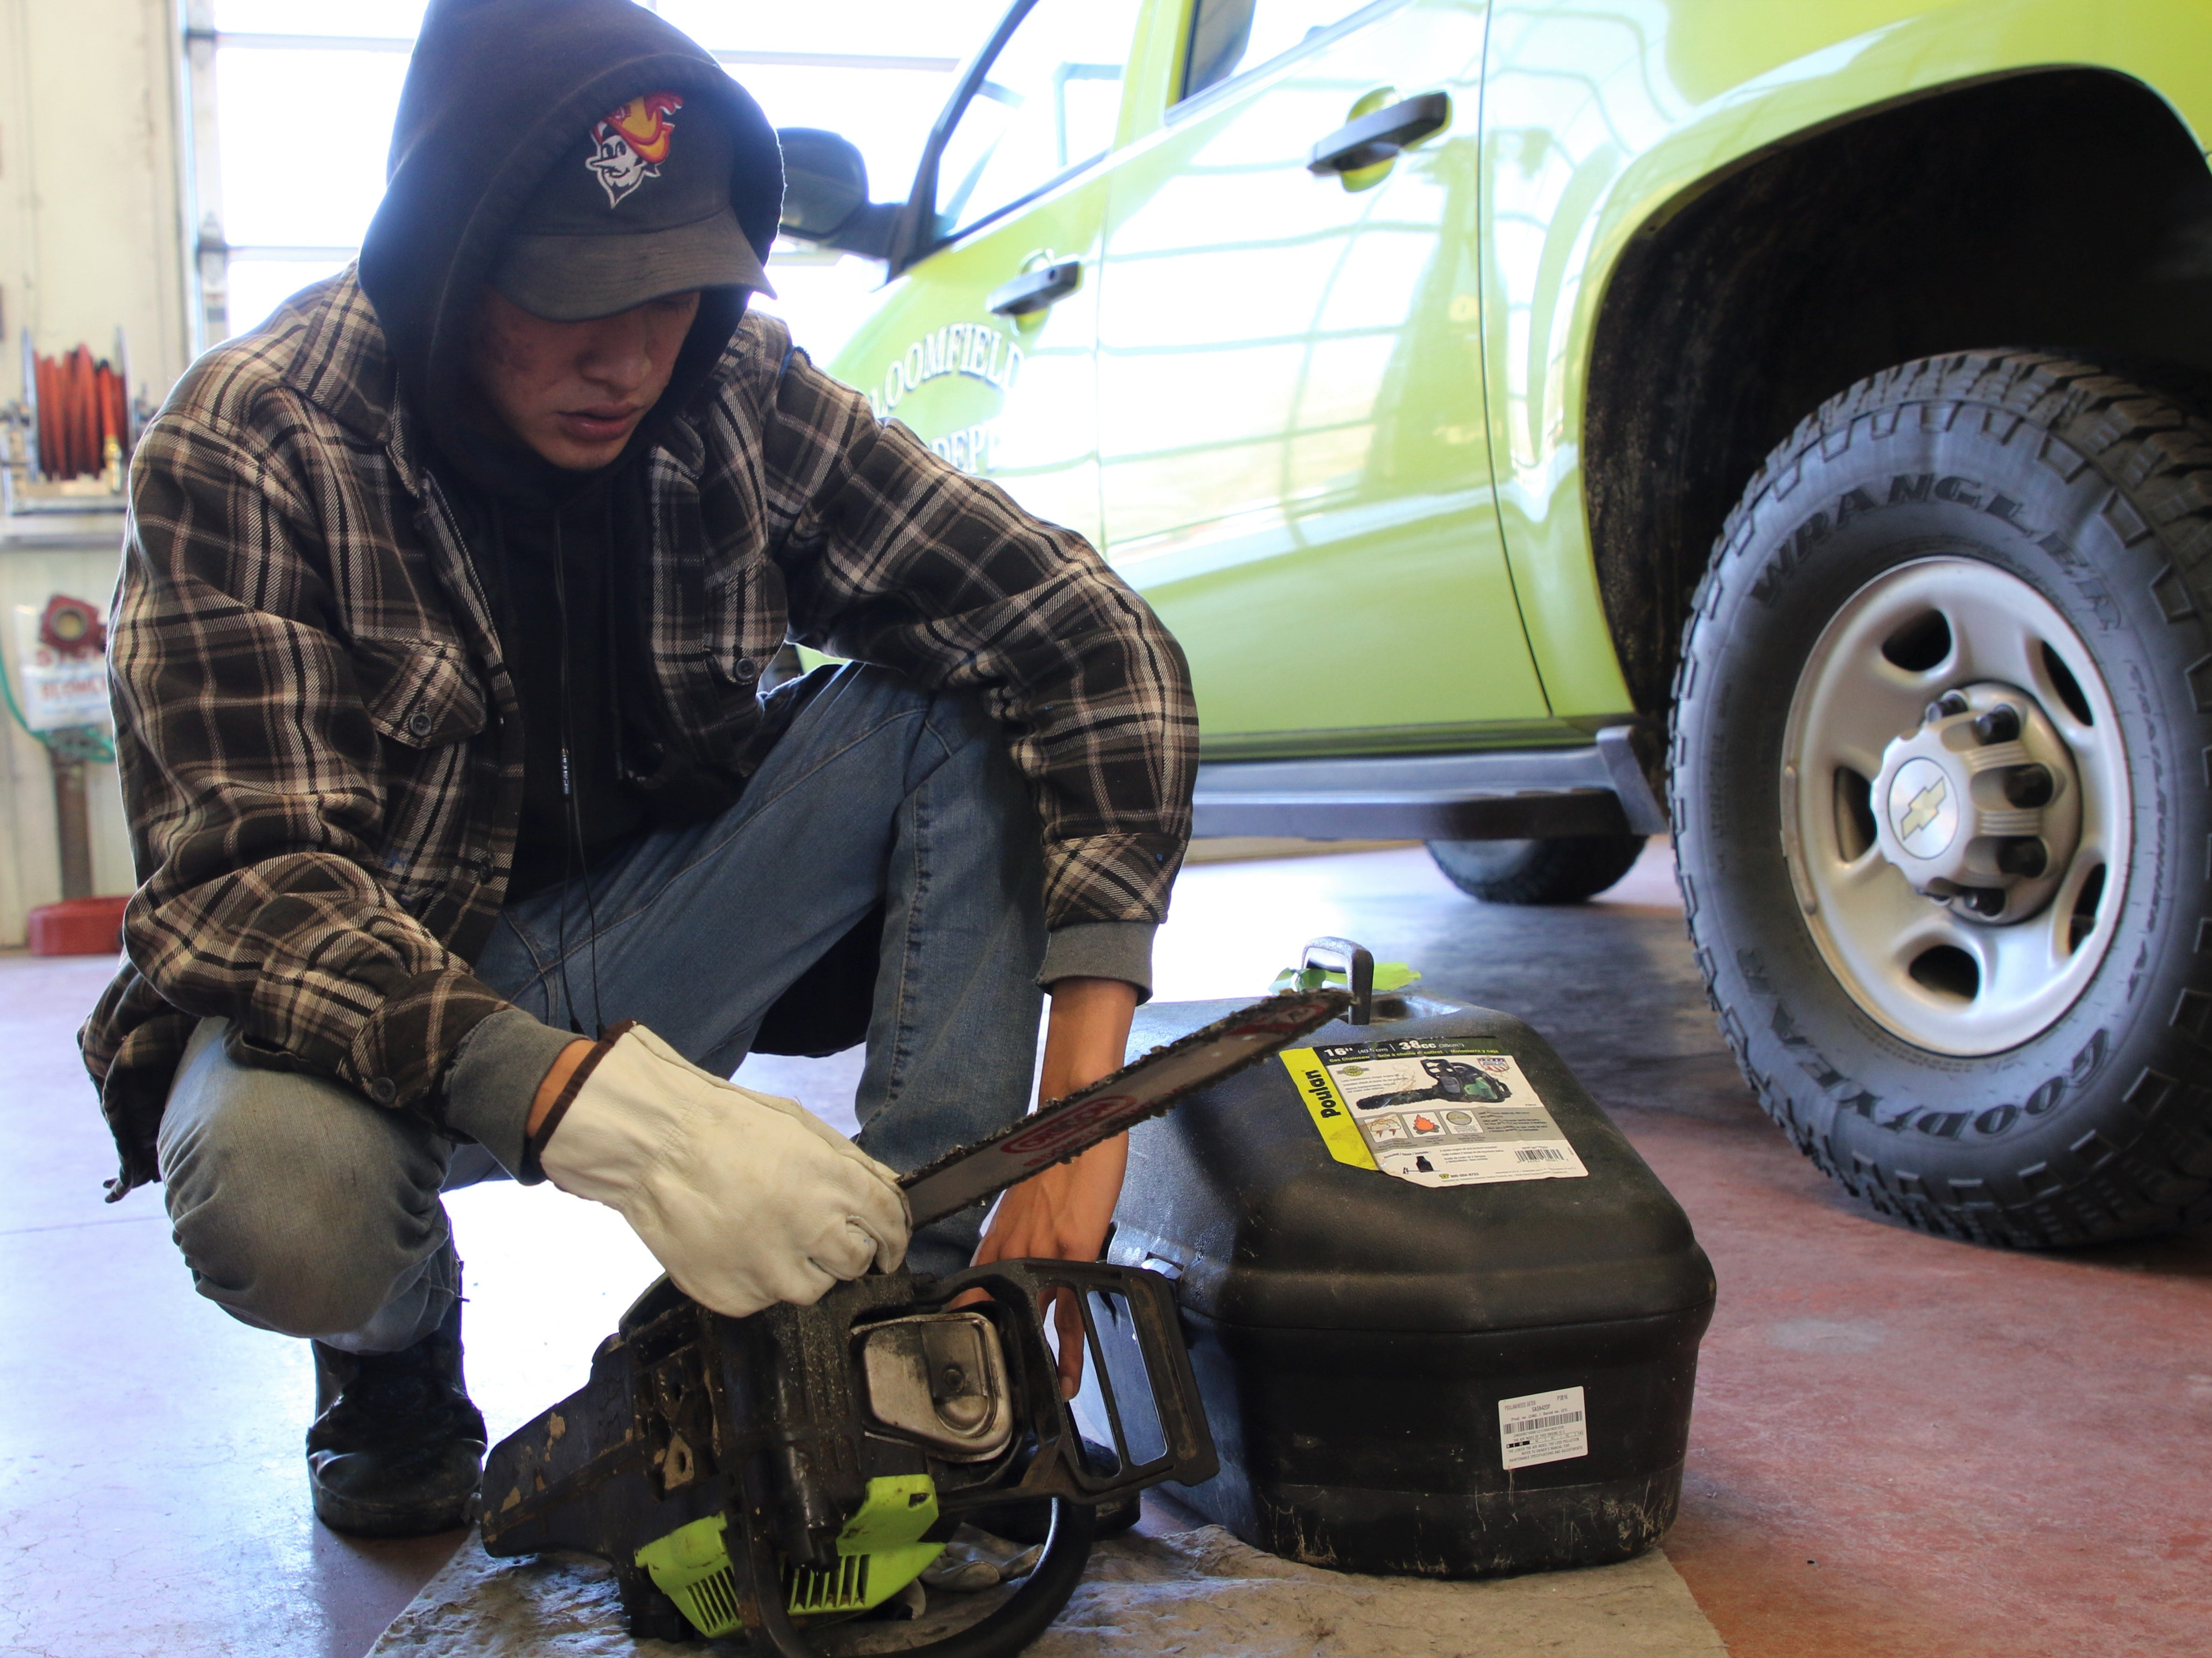 Youth Conservation Corps member Xavier David examines a chainsaw during a maintenance inspection on Thursday at the Bloomfield Fire Department station.